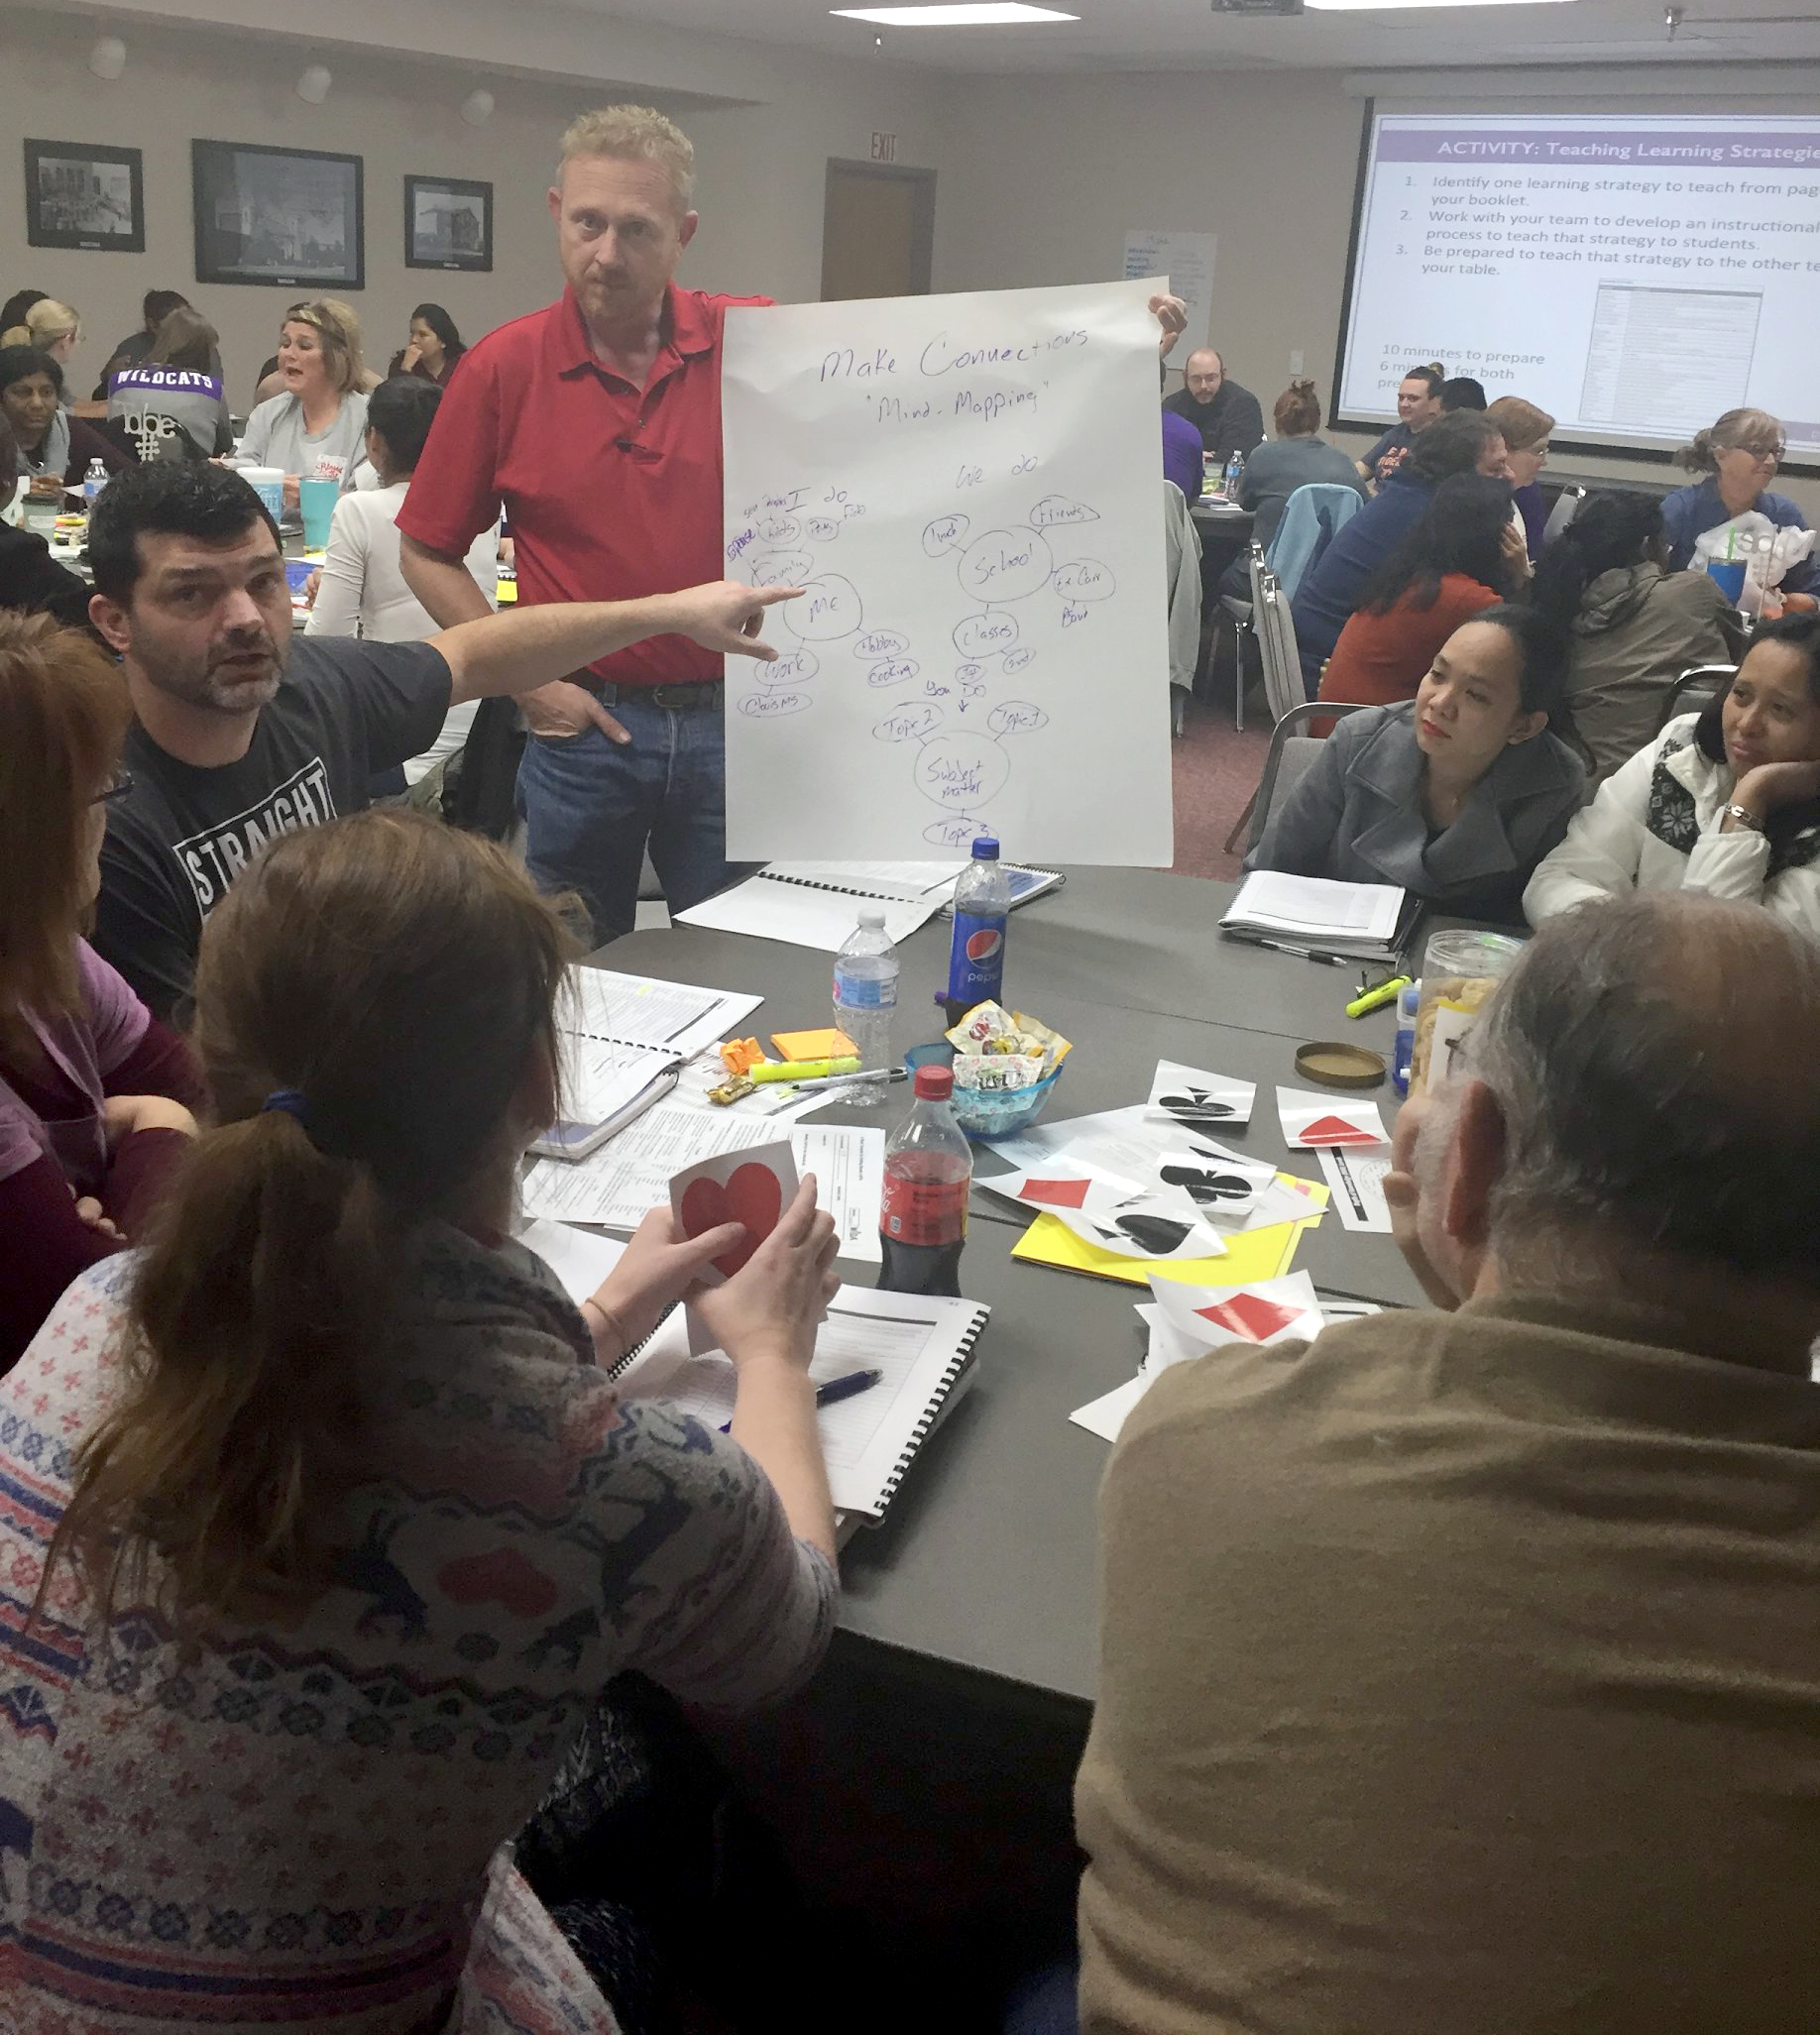 Image of teachers at a workshop discussing instruction methods